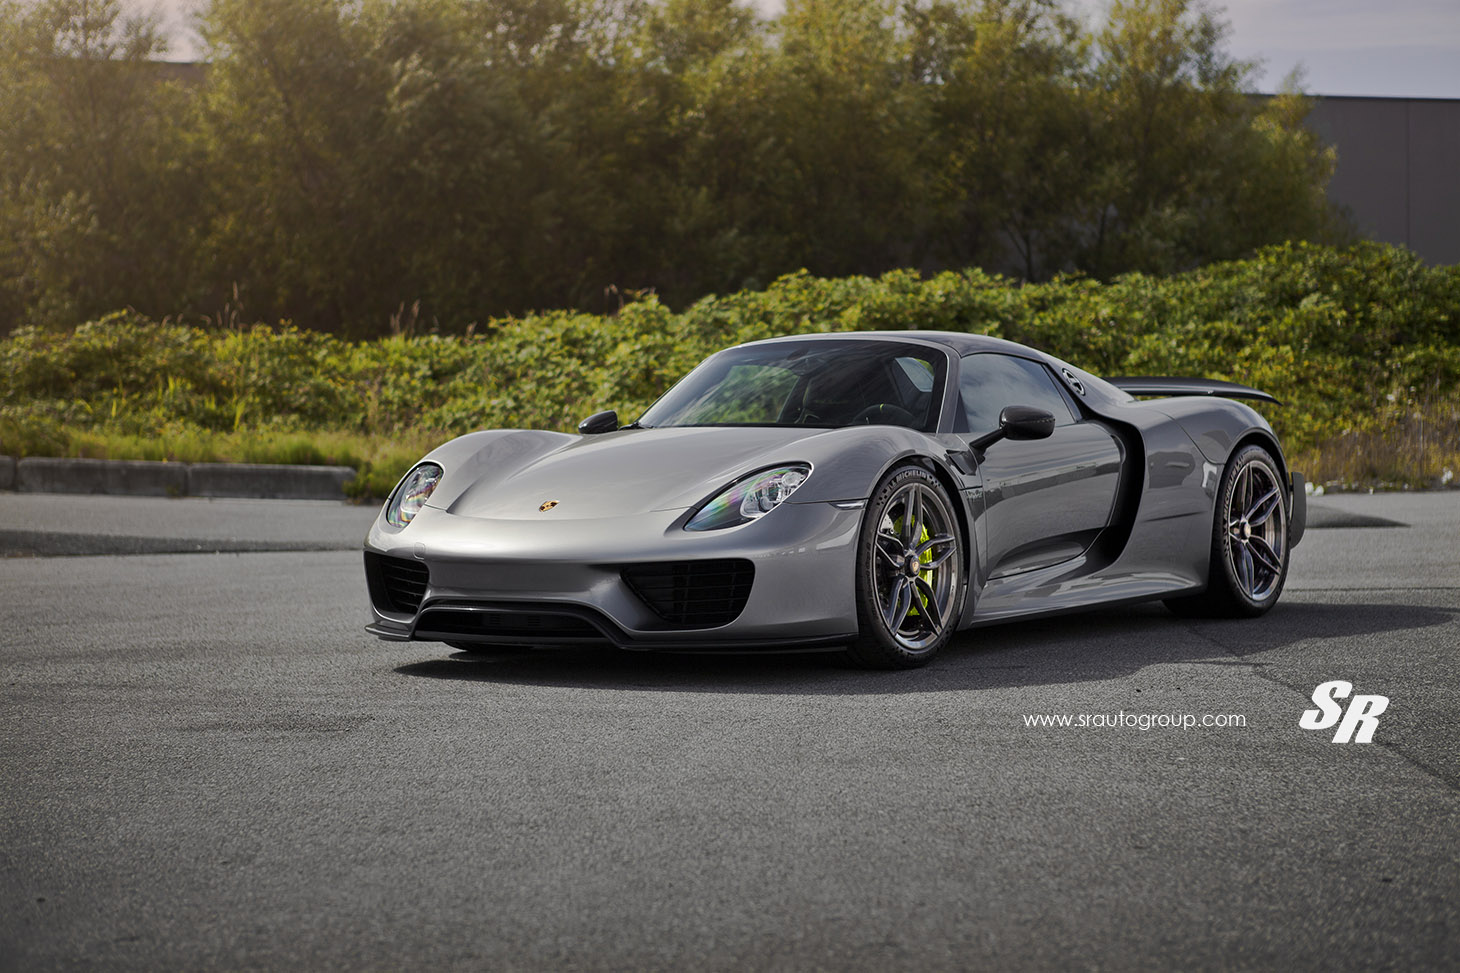 sr auto shows amazing porsche 918 spyder. Black Bedroom Furniture Sets. Home Design Ideas